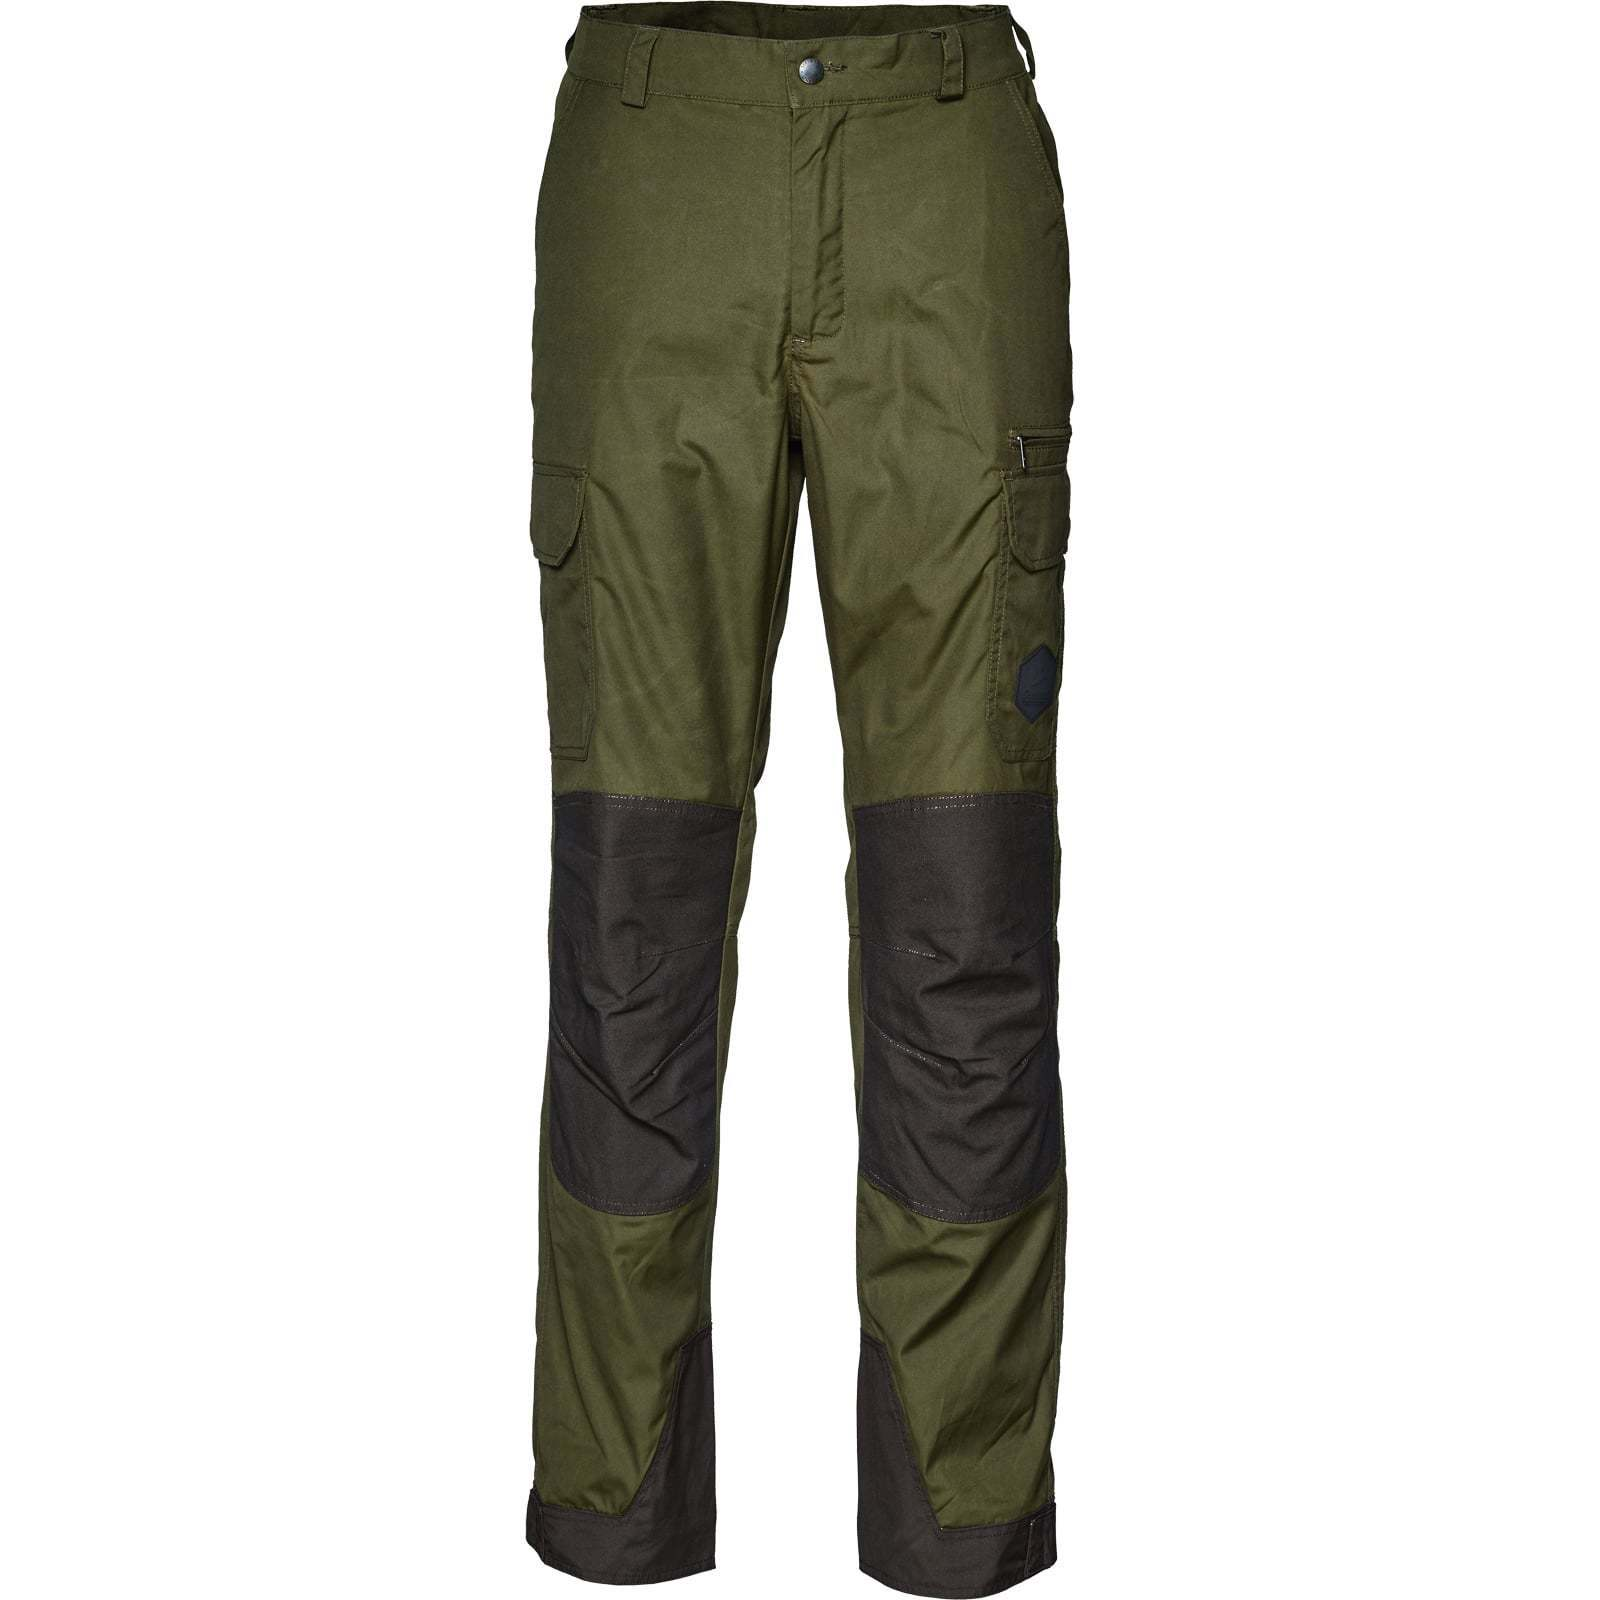 Seeland Key-Point Reinforced Trousers -   Our Price